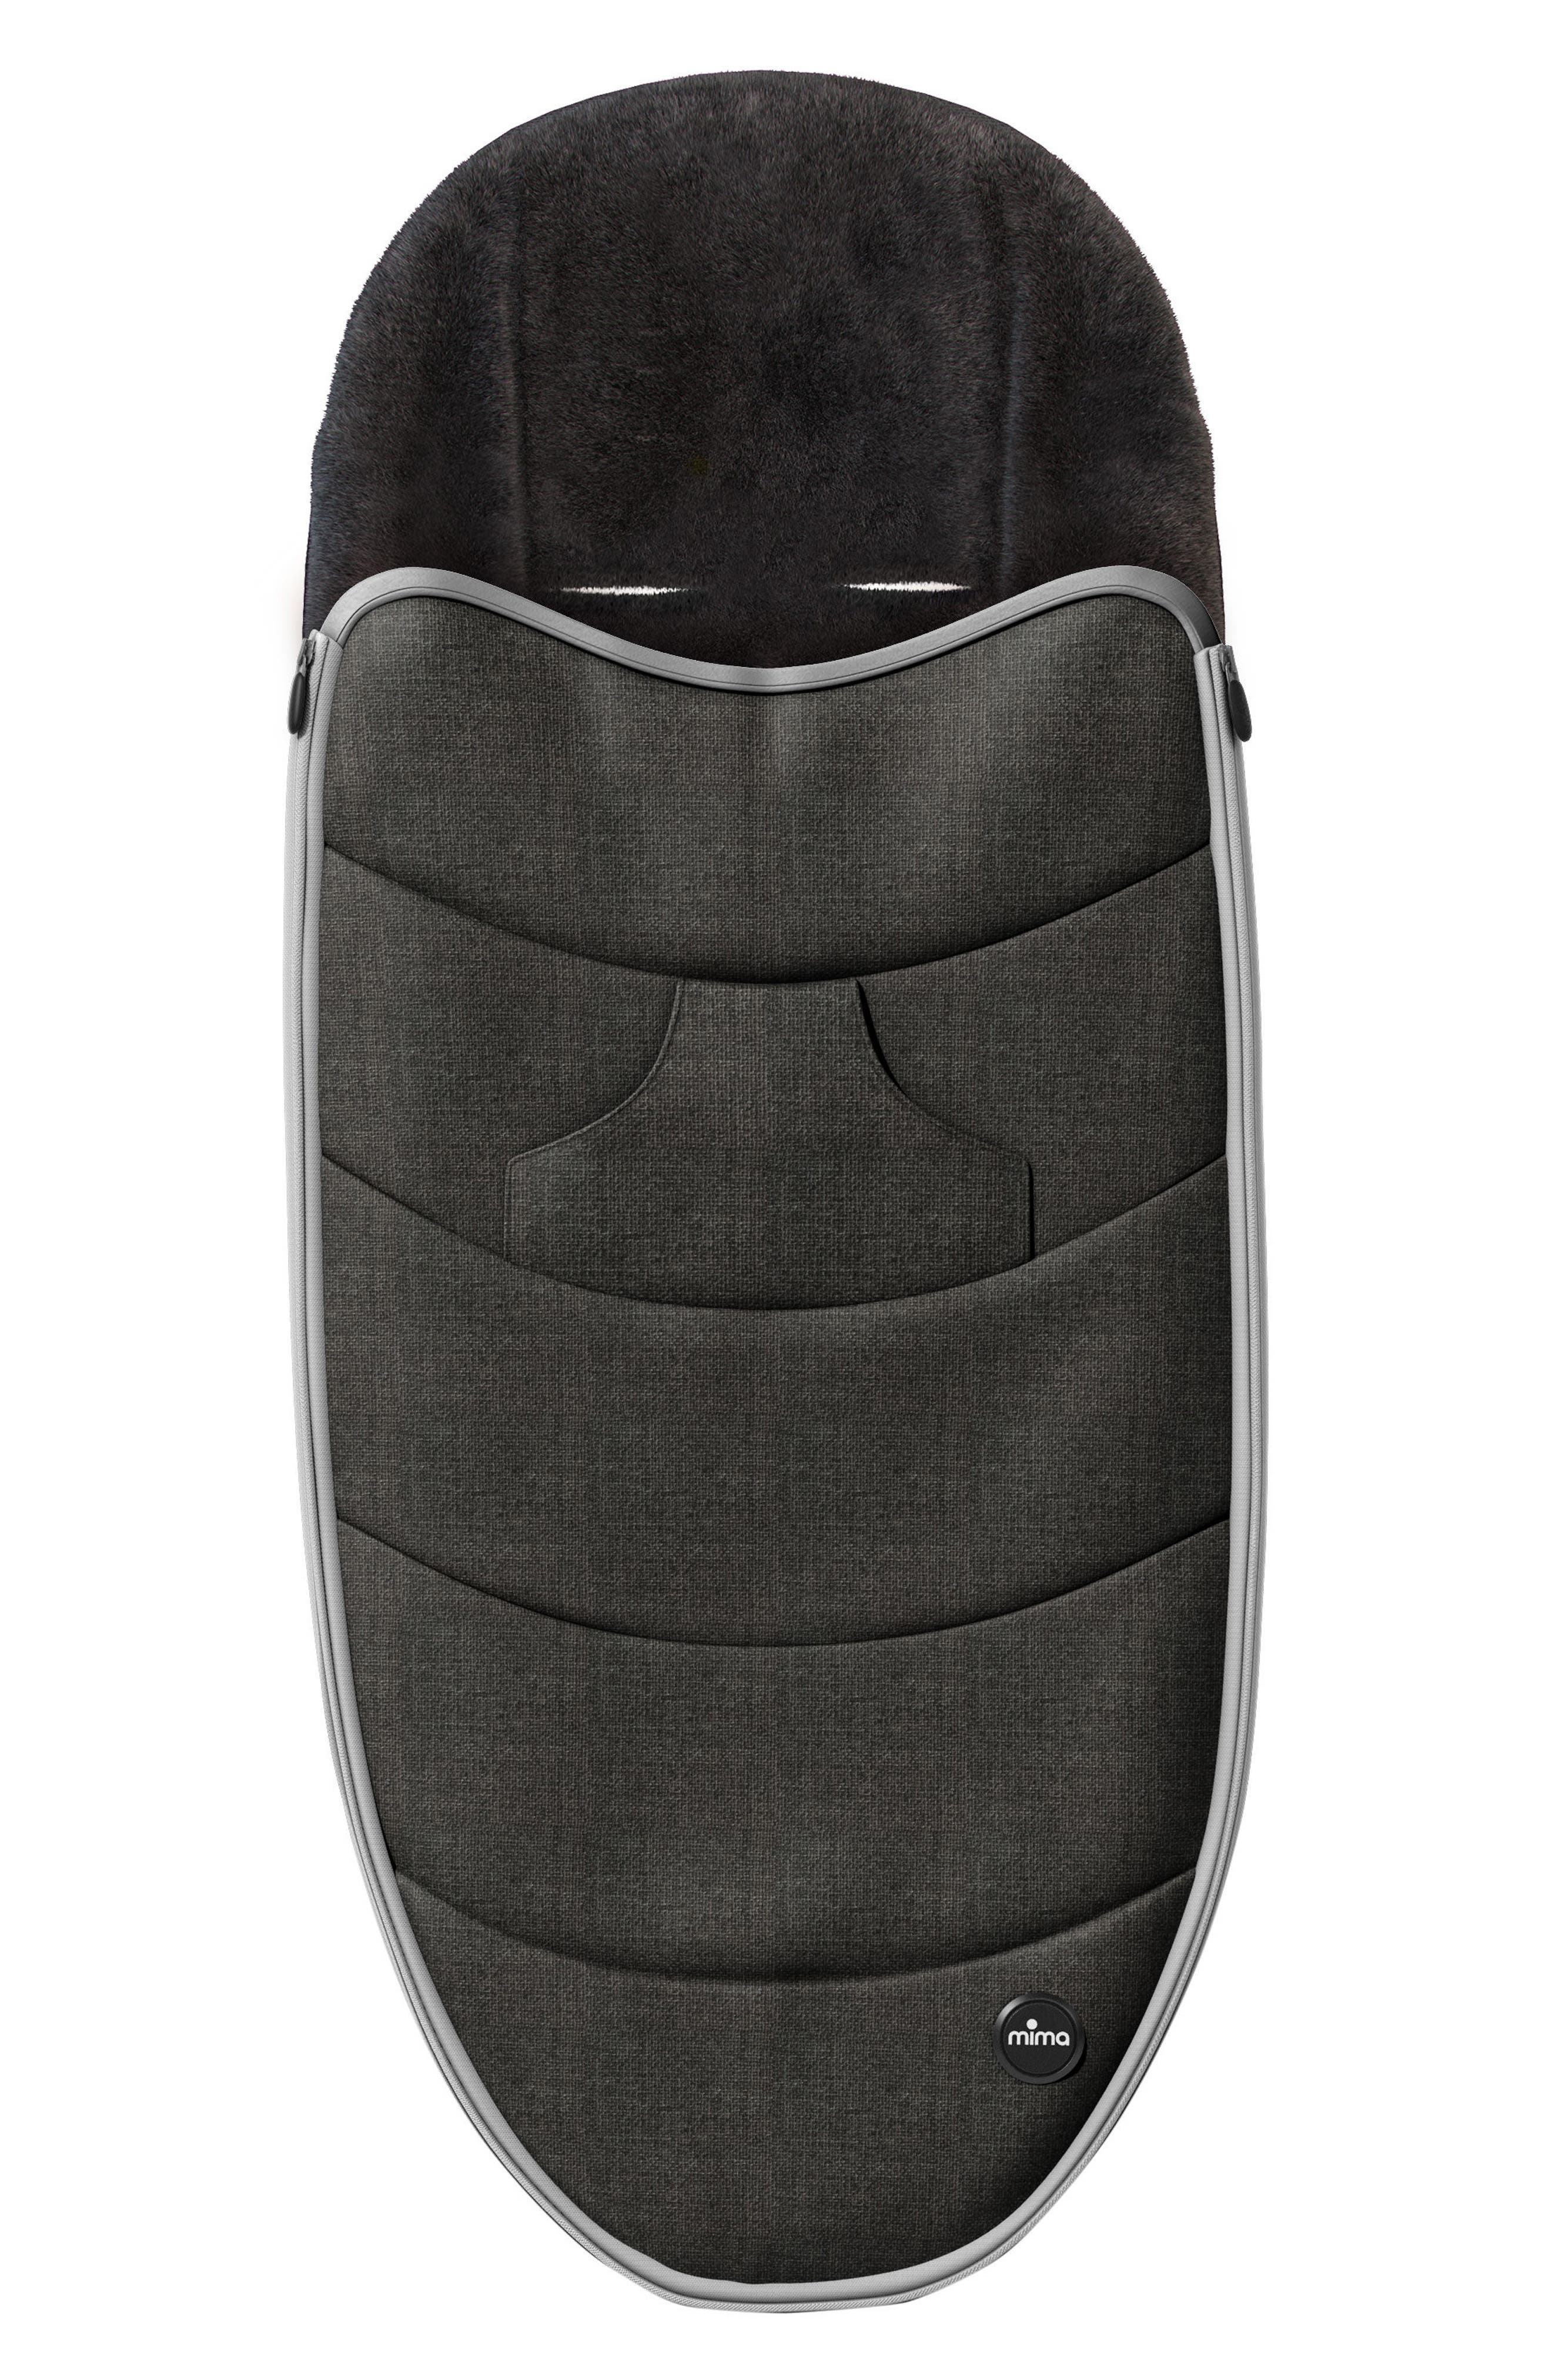 Footmuff for Zigi Strollers,                         Main,                         color, Charcoal